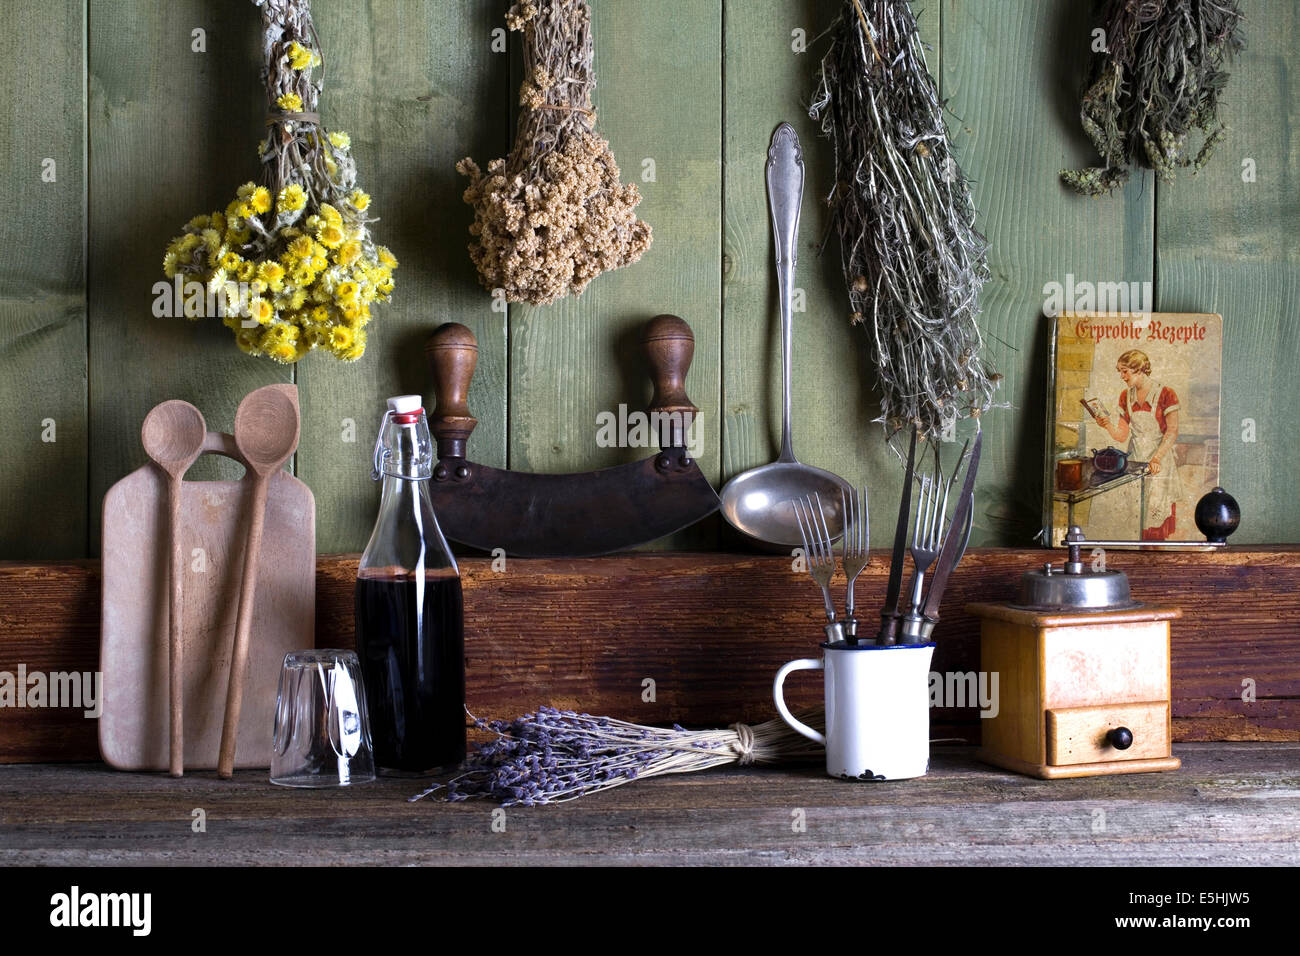 Rustic kitchen still life with kitchen utensils and dried herbs Stock Photo